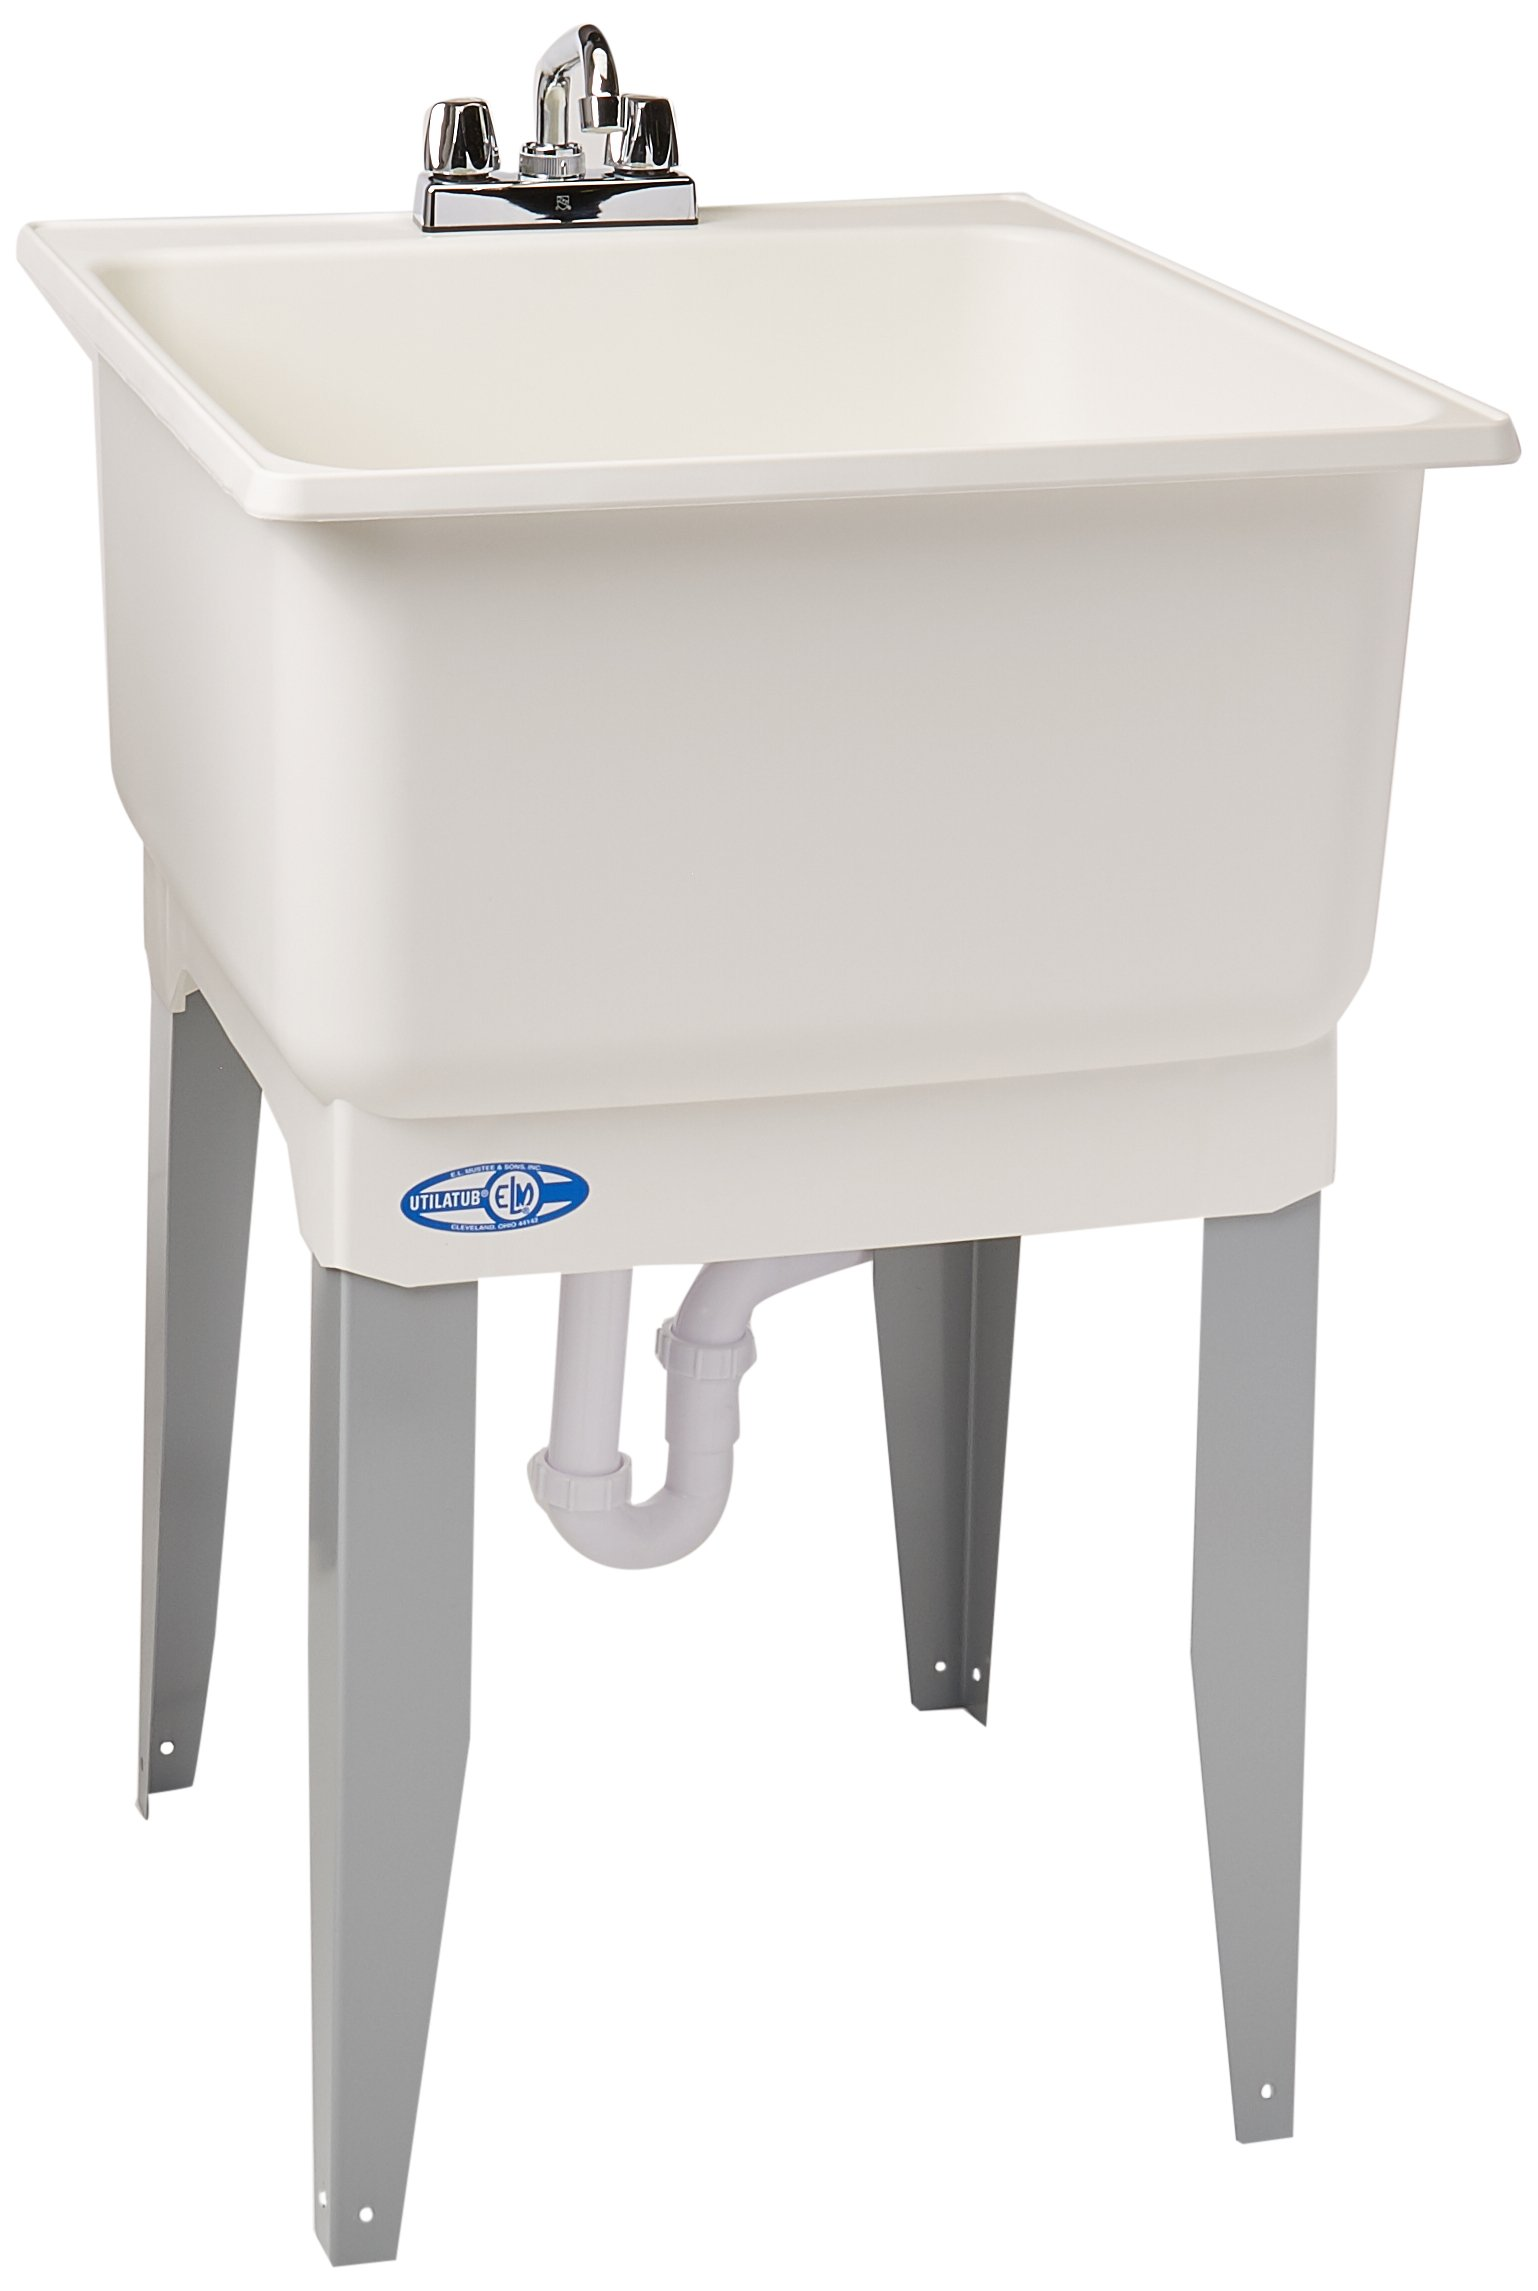 Mustee  14CP 14CP Utilatub Combo Laundry/Utility Tub